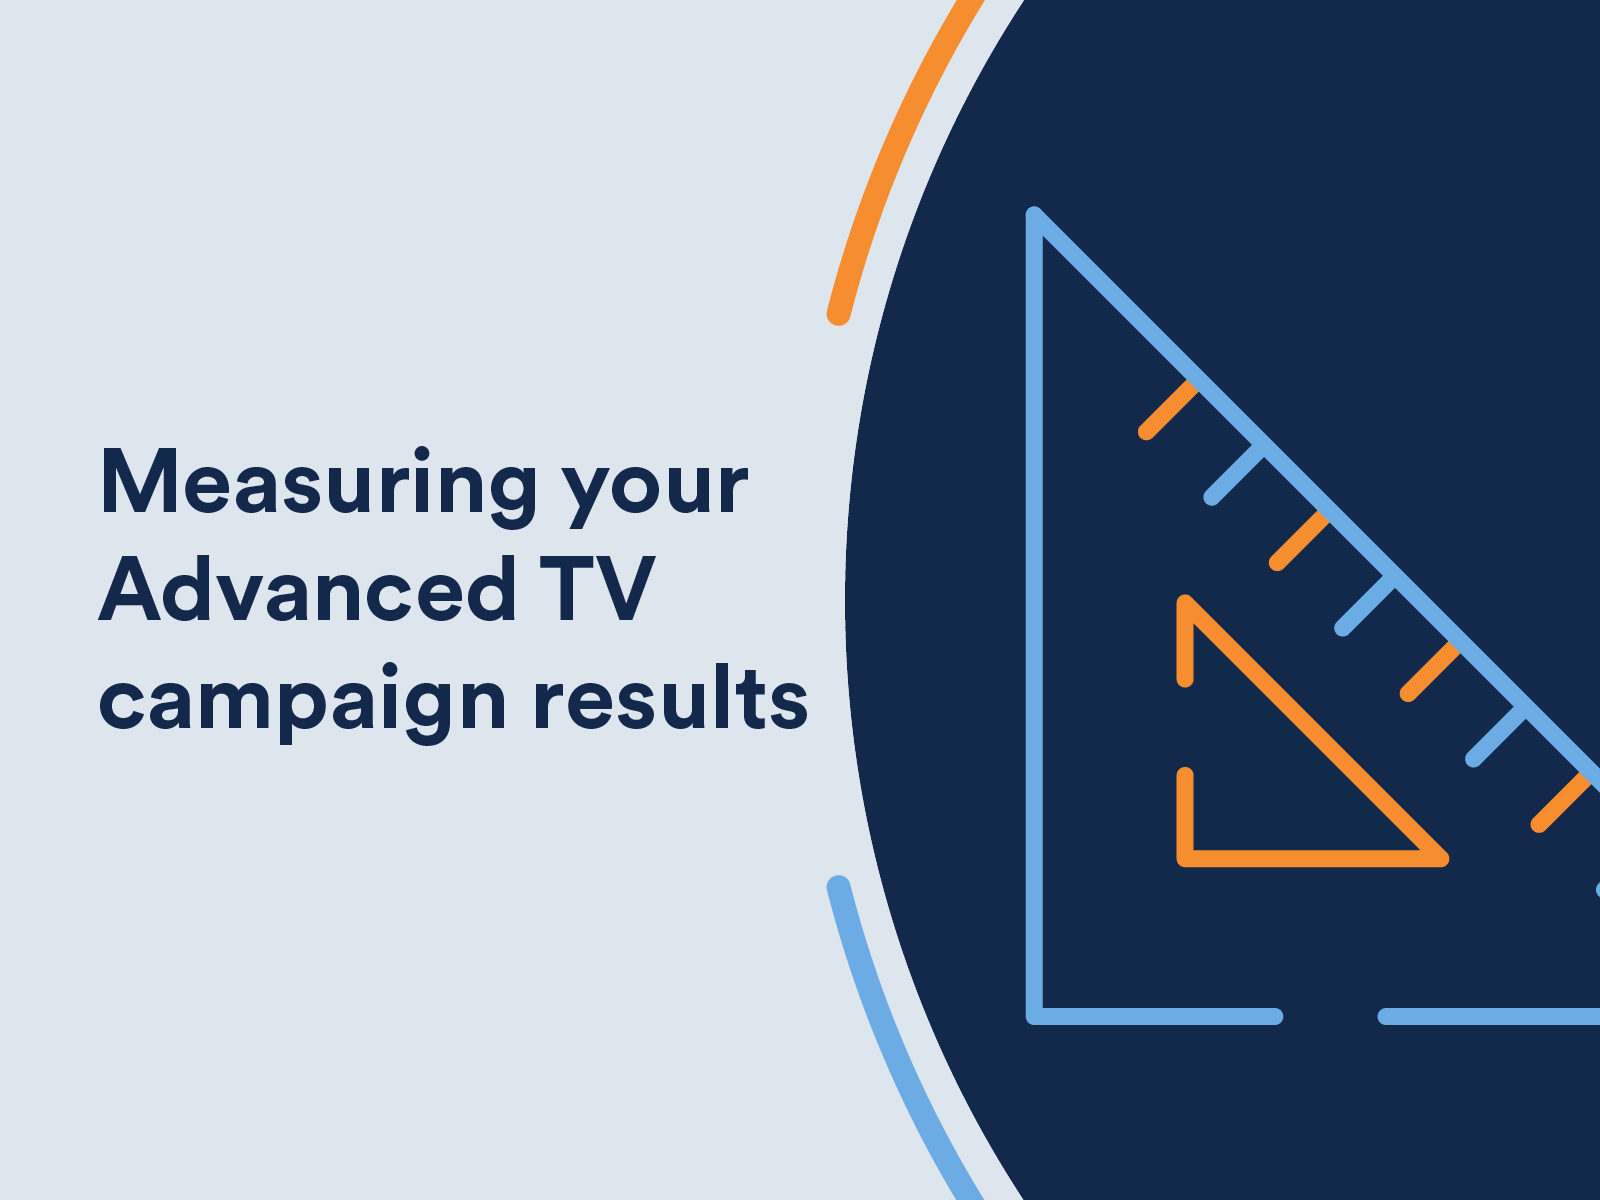 Infographic: Measuring your Advanced TV campaign results effectively